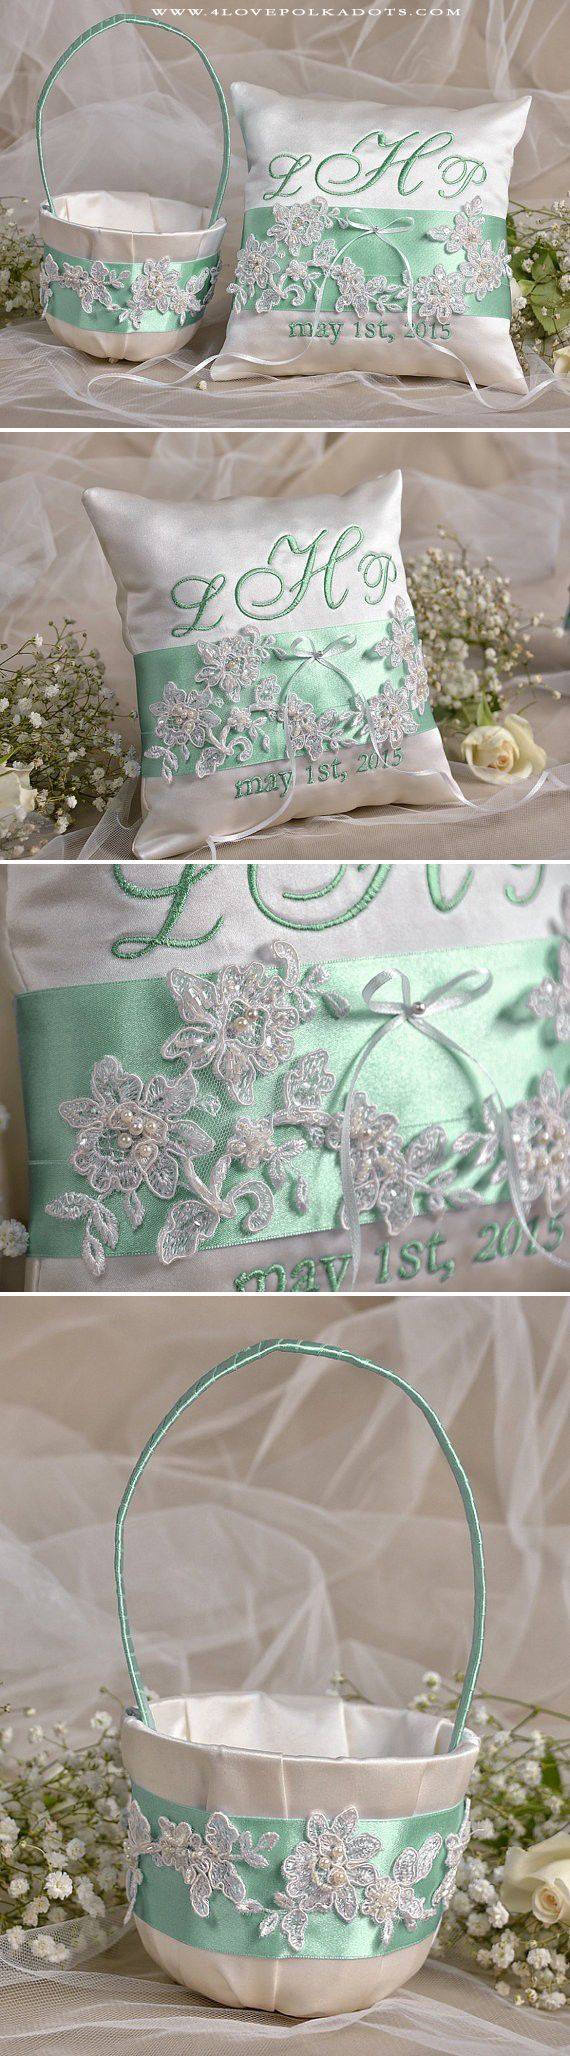 Mint Wedding Flower Girl Set : Satin Ring Bearer Pillow & Basket #mintwedding #mint #flowergirl #weddingideas